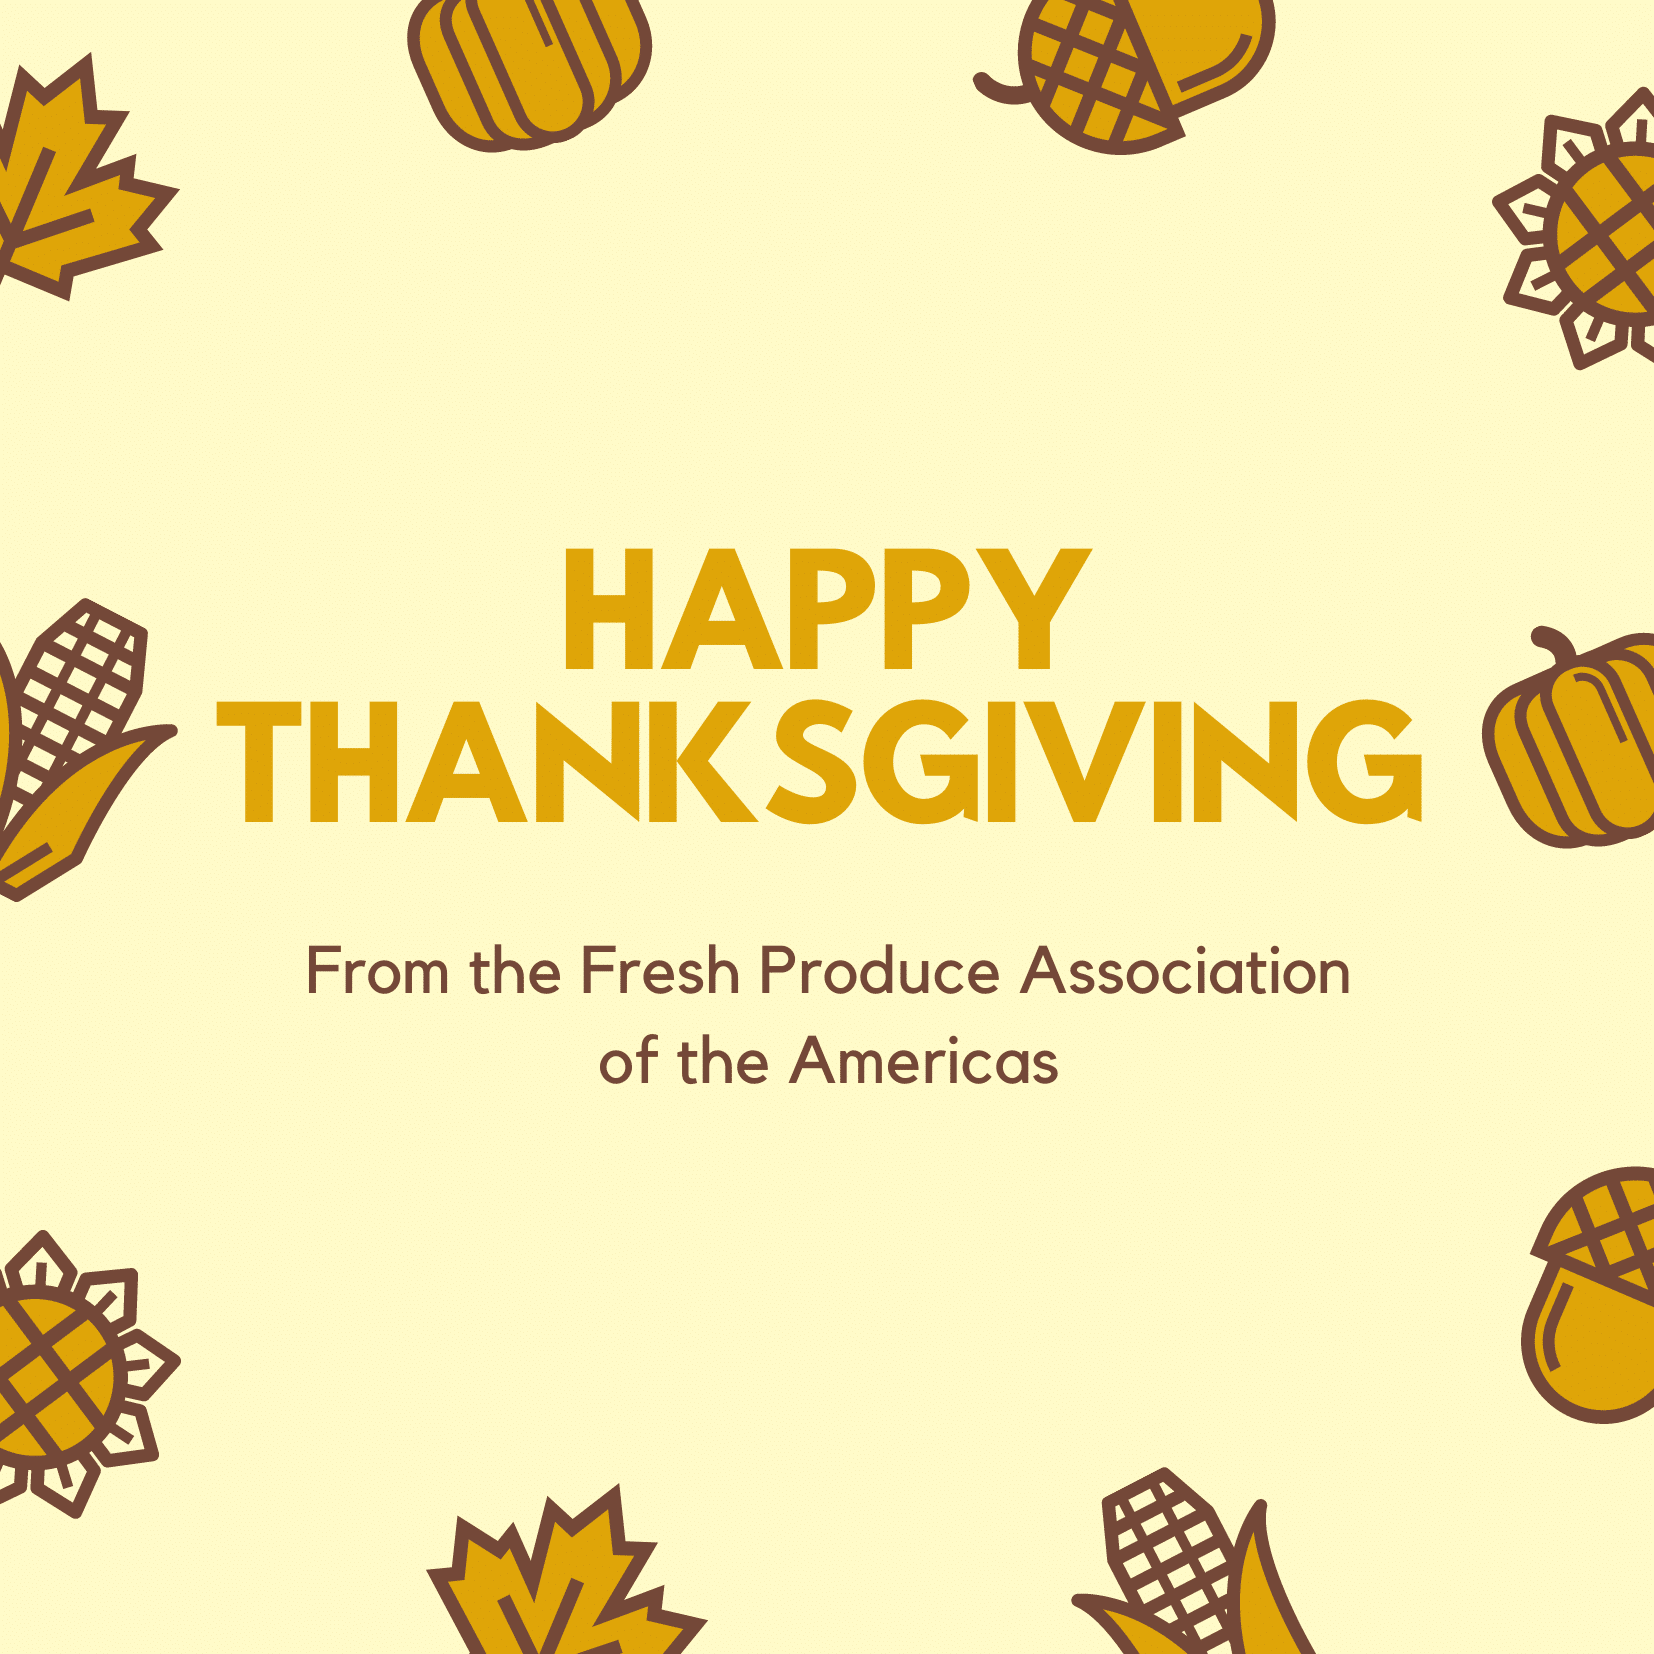 Thanksgiving Message  from the Fresh Produce Association of the Americas